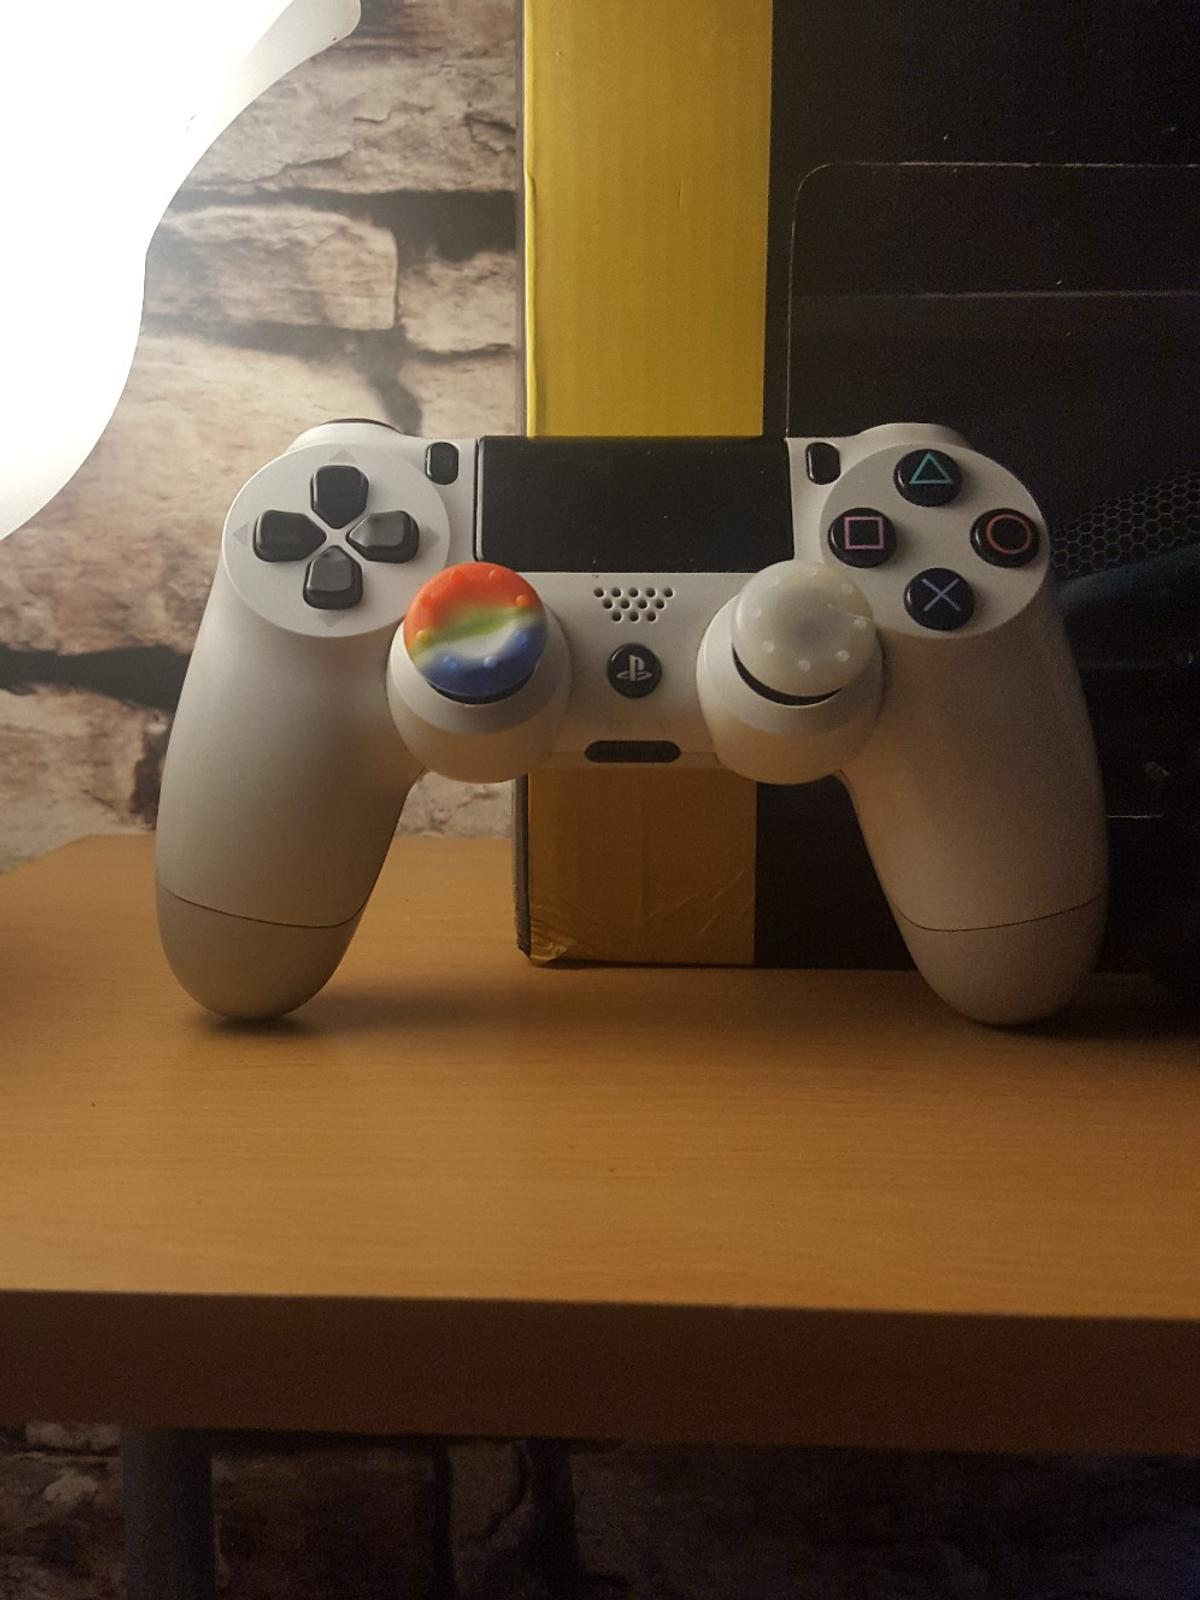 Protect the original buttons from wear so the pad will like look like its brand new always slide over original buttons also much more grip then the standard pad button improve the grip even if your button are ripped off they will still fit but be slightly loose (black pad in pics) range of colours ask what's available  £5 for 4x rubber grips